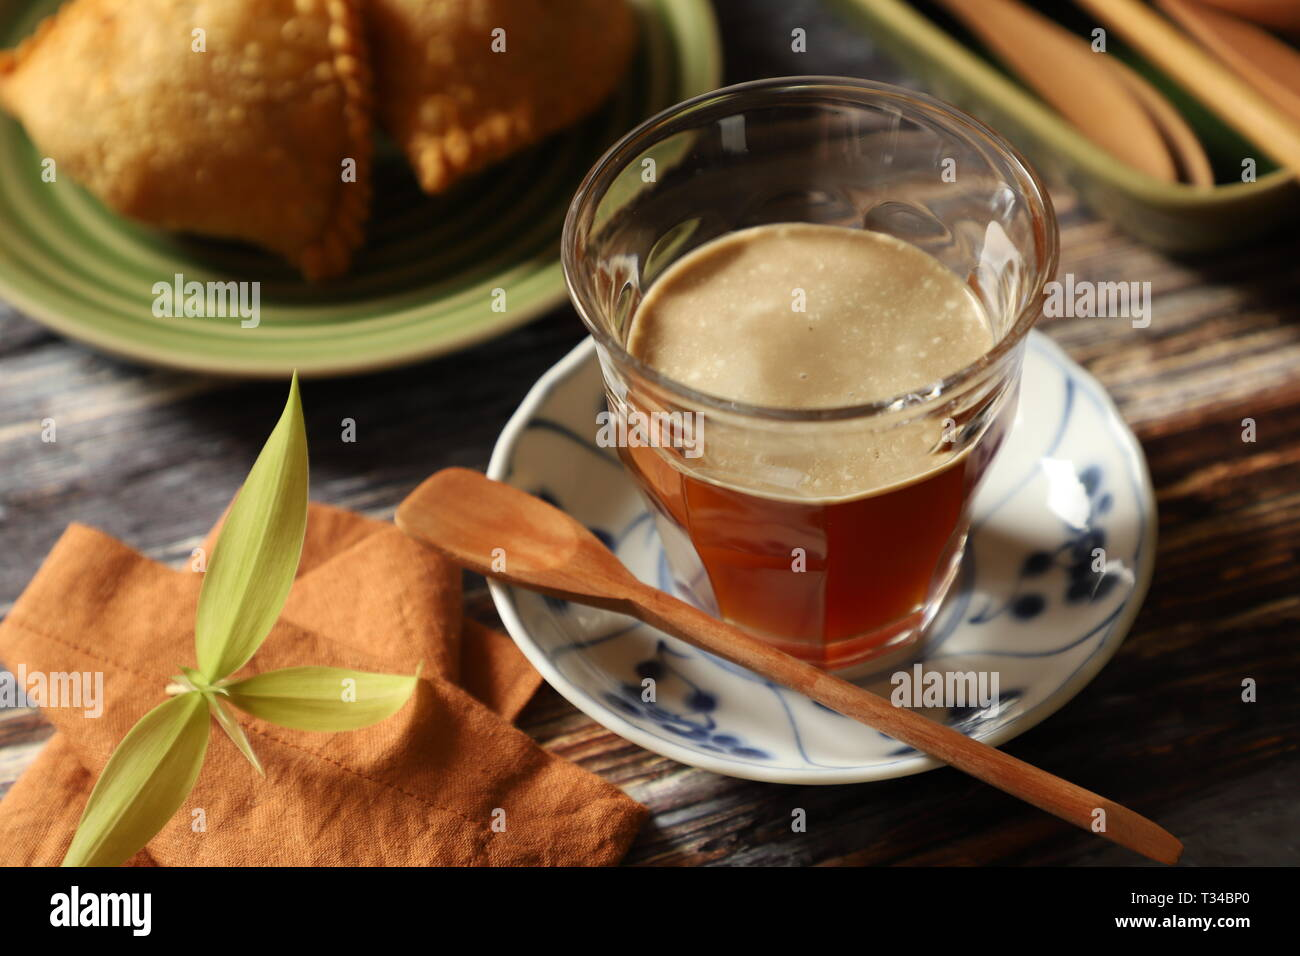 Sarabba. Traditional herbal-spiced tea latte from Makassar (Ujung Pandang), South Sulawesi. - Stock Image